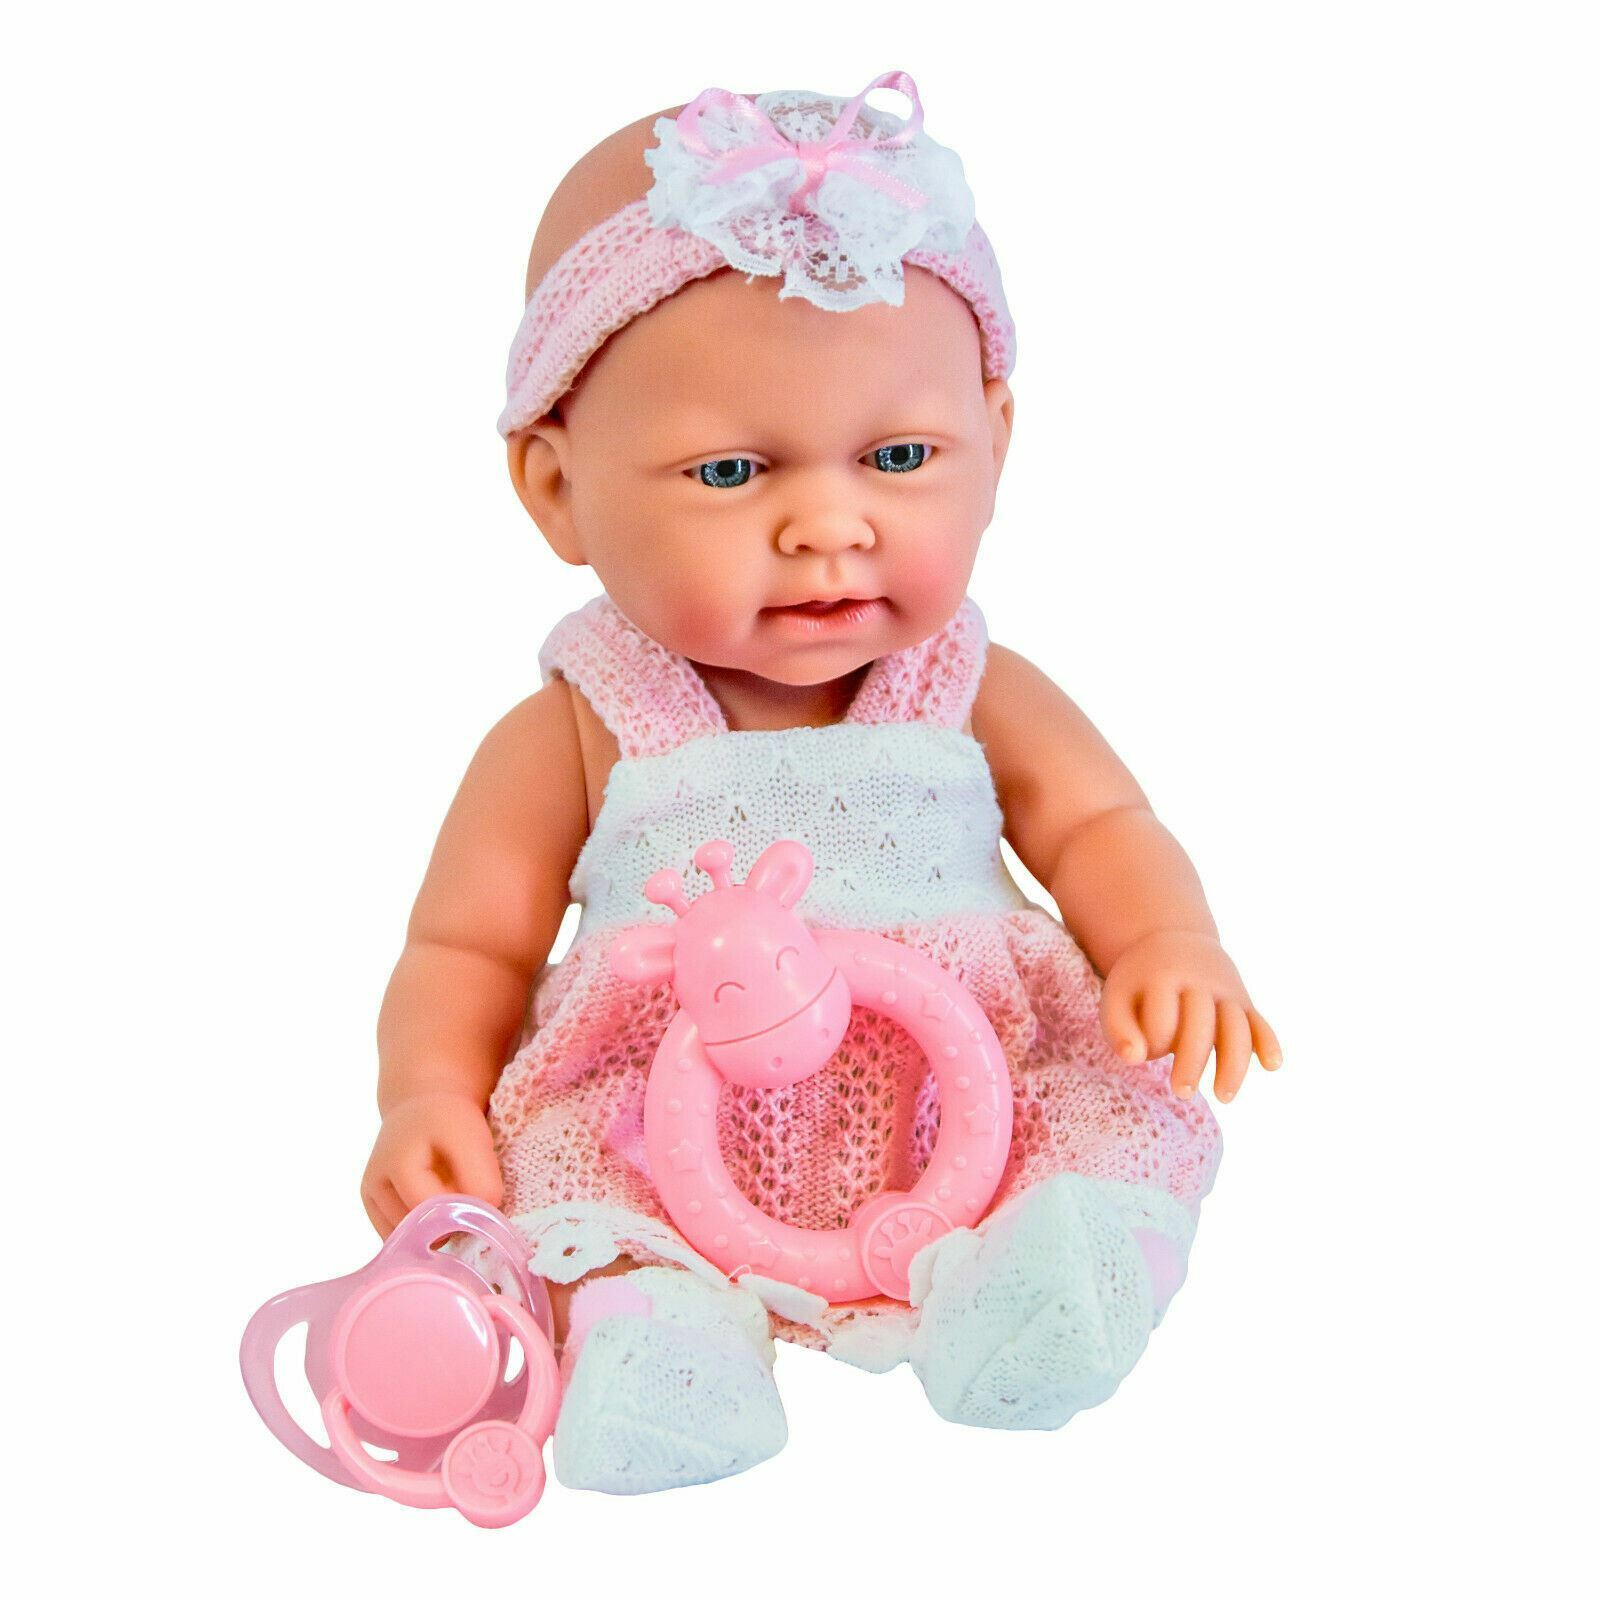 10& Pink Baby Doll Play Set with Feeding Accessories Milk